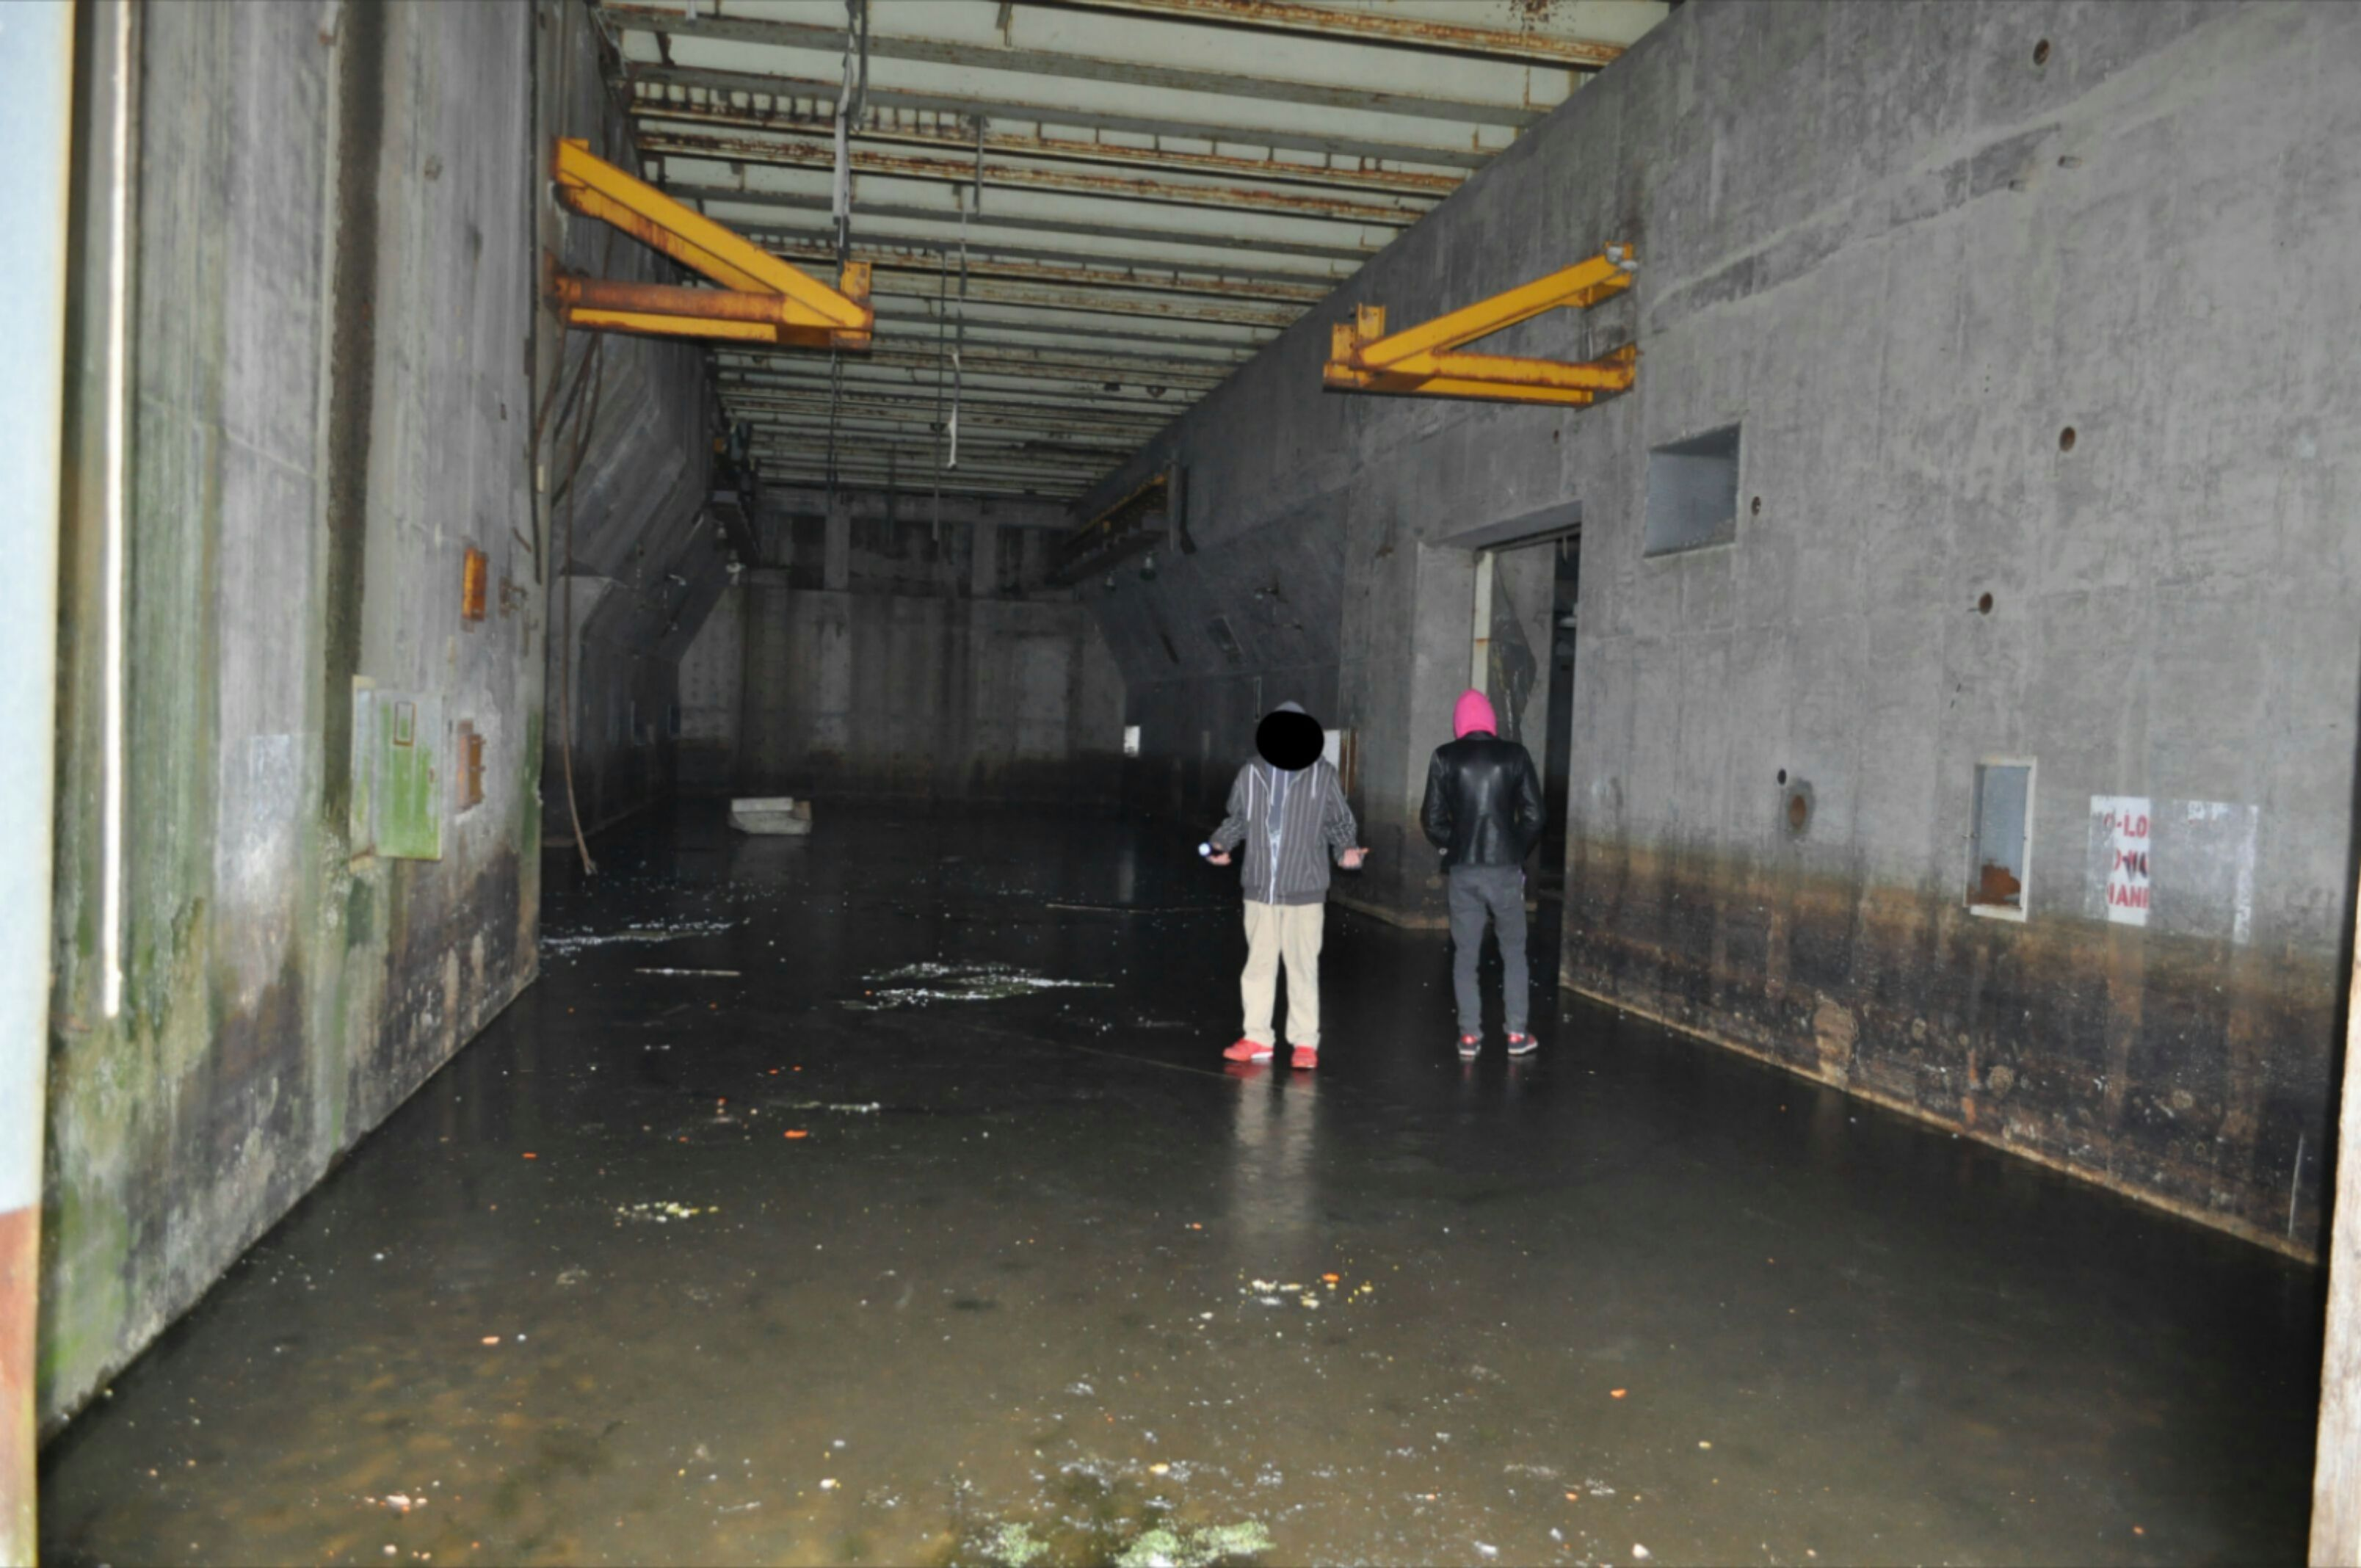 Nuclear Missile Silo For Sale My Buddies On Ice Inside A Flooded Atlas E Missile Base In Rural